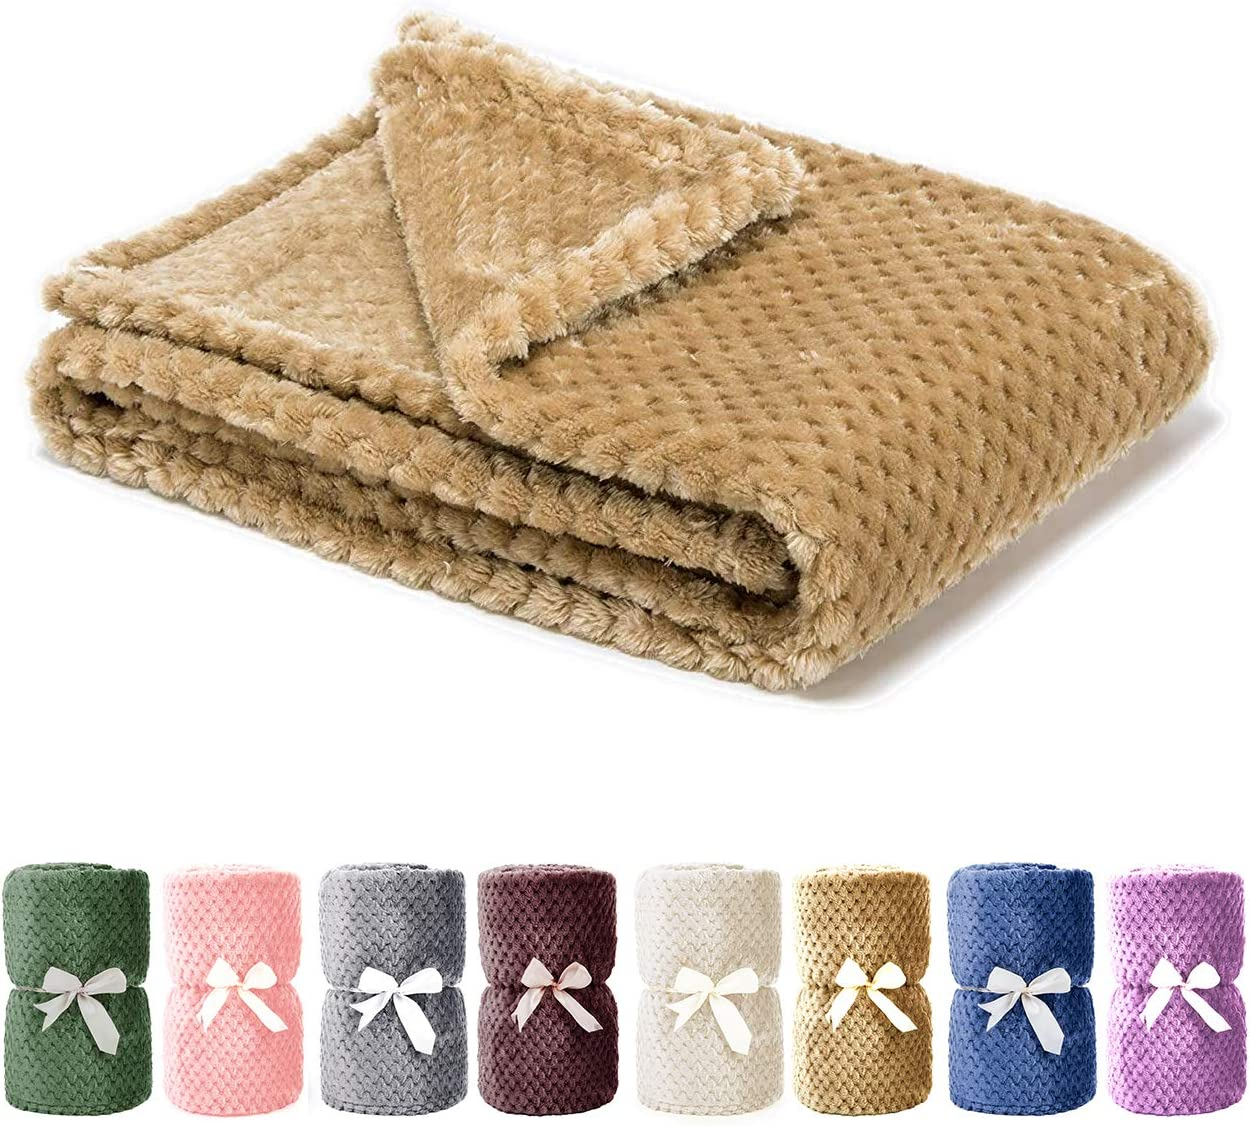 Msicyness Dog Blanket, Premium Fleece Fluffy Throw Blankets Soft and Warm Covers for Pets Dogs Cats(Medium Khaki)